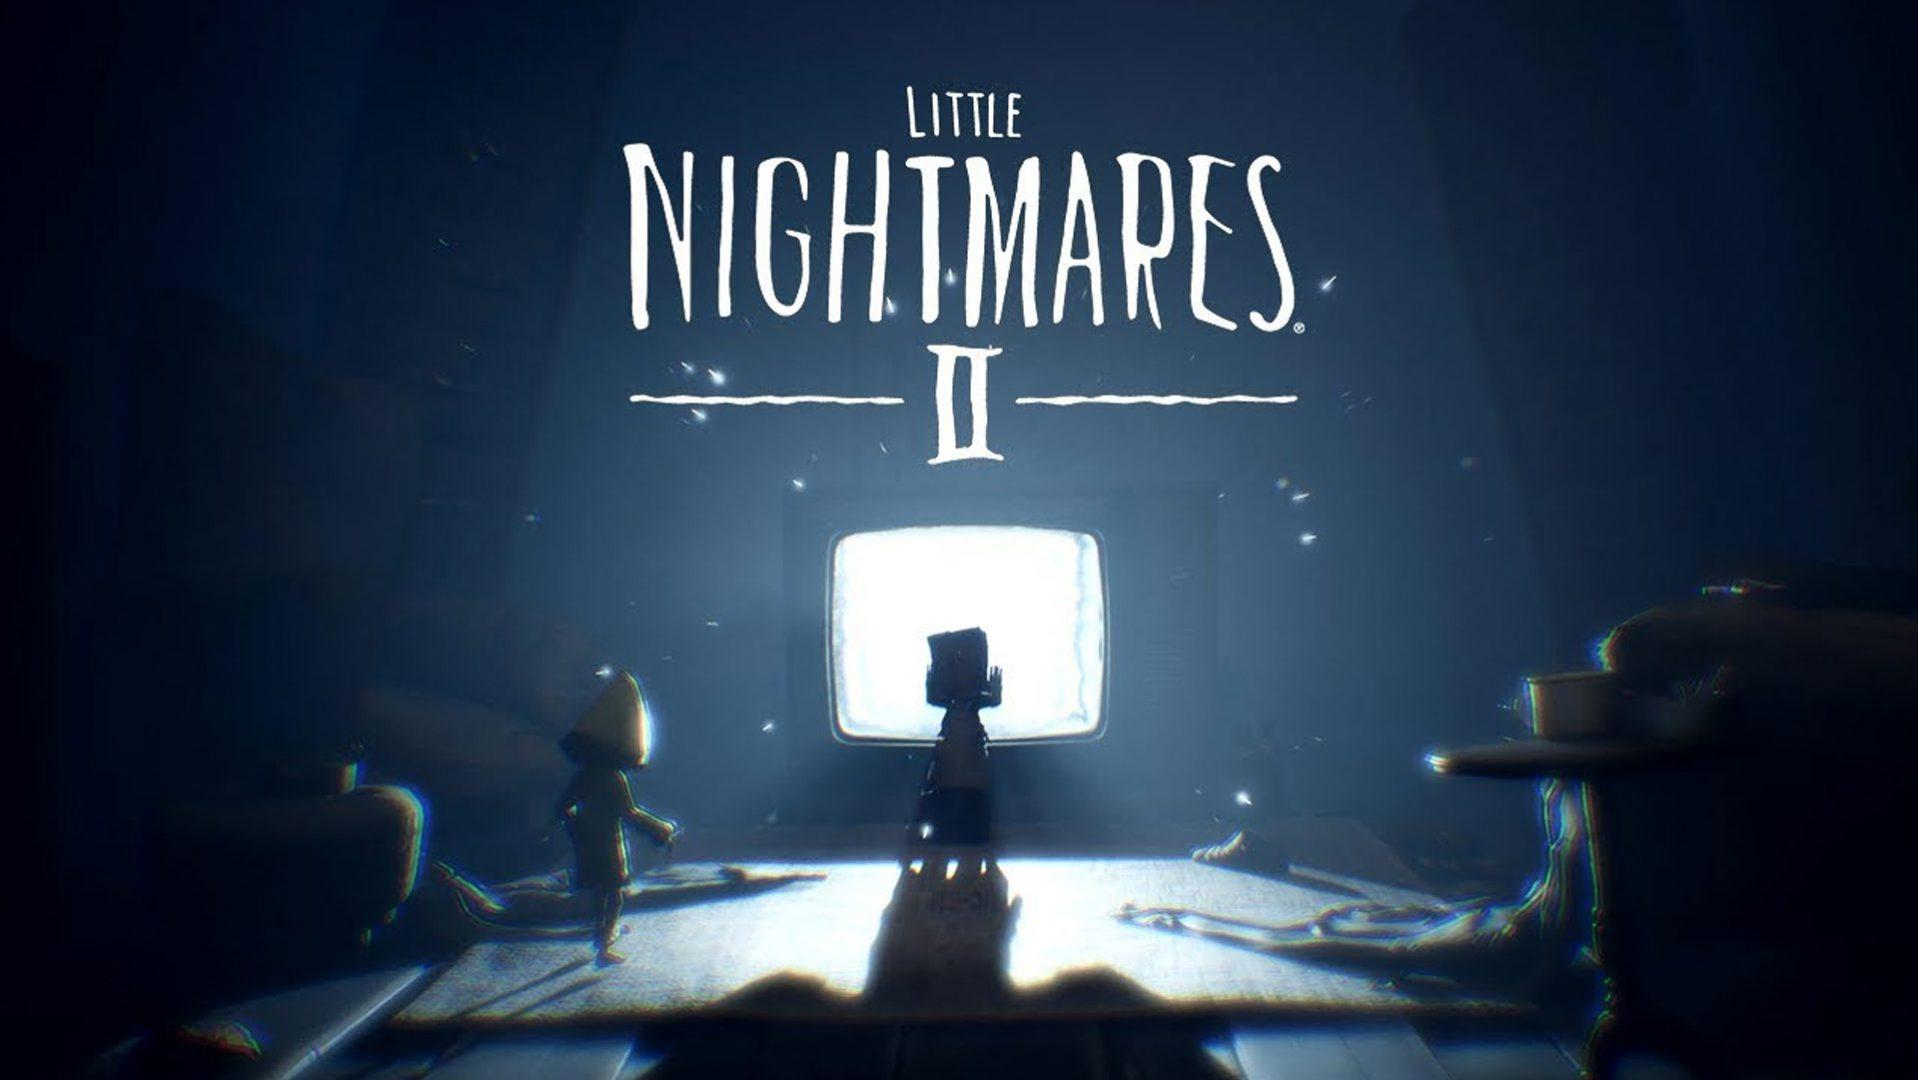 Le Premier Gameplay De Little Nightmares 2 Sera Présenté En